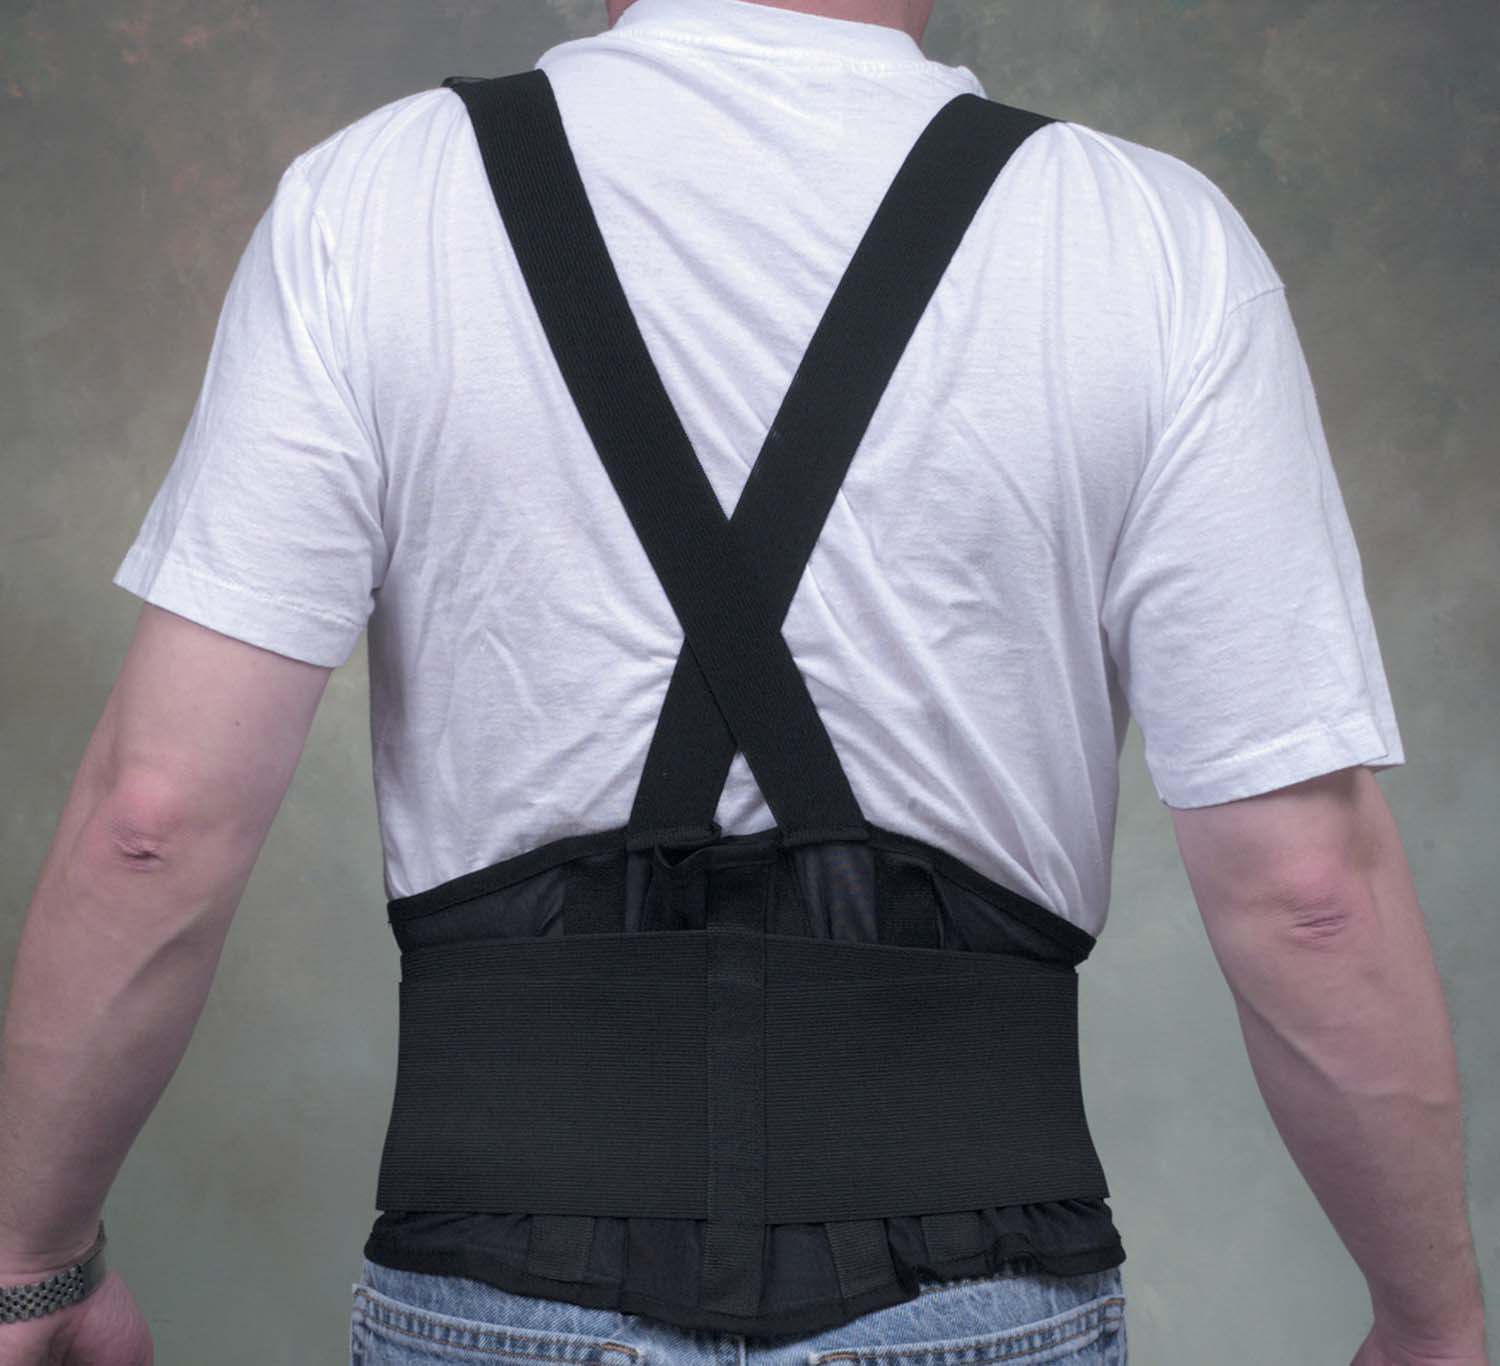 industrial-lumbar-support-w-shoulder-straps-small-632-6390-0221-lr.jpg